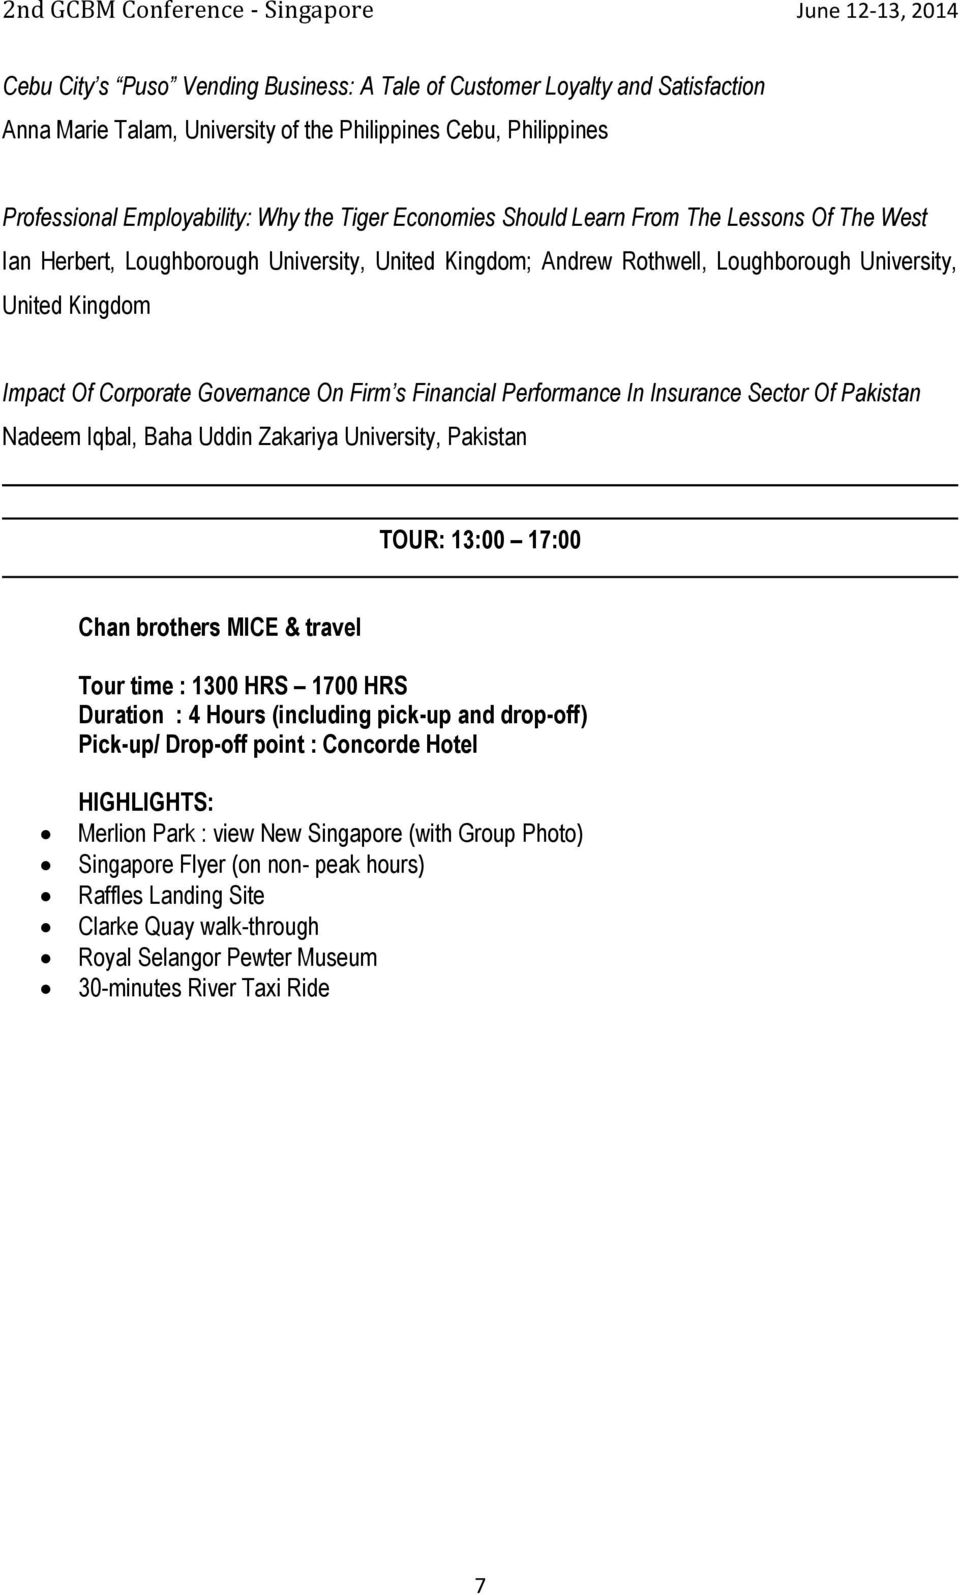 Financial Performance In Insurance Sector Of Pakistan Nadeem Iqbal, Baha Uddin Zakariya University, Pakistan TOUR: 13:00 17:00 Chan brothers MICE & travel Tour time : 1300 HRS 1700 HRS Duration : 4